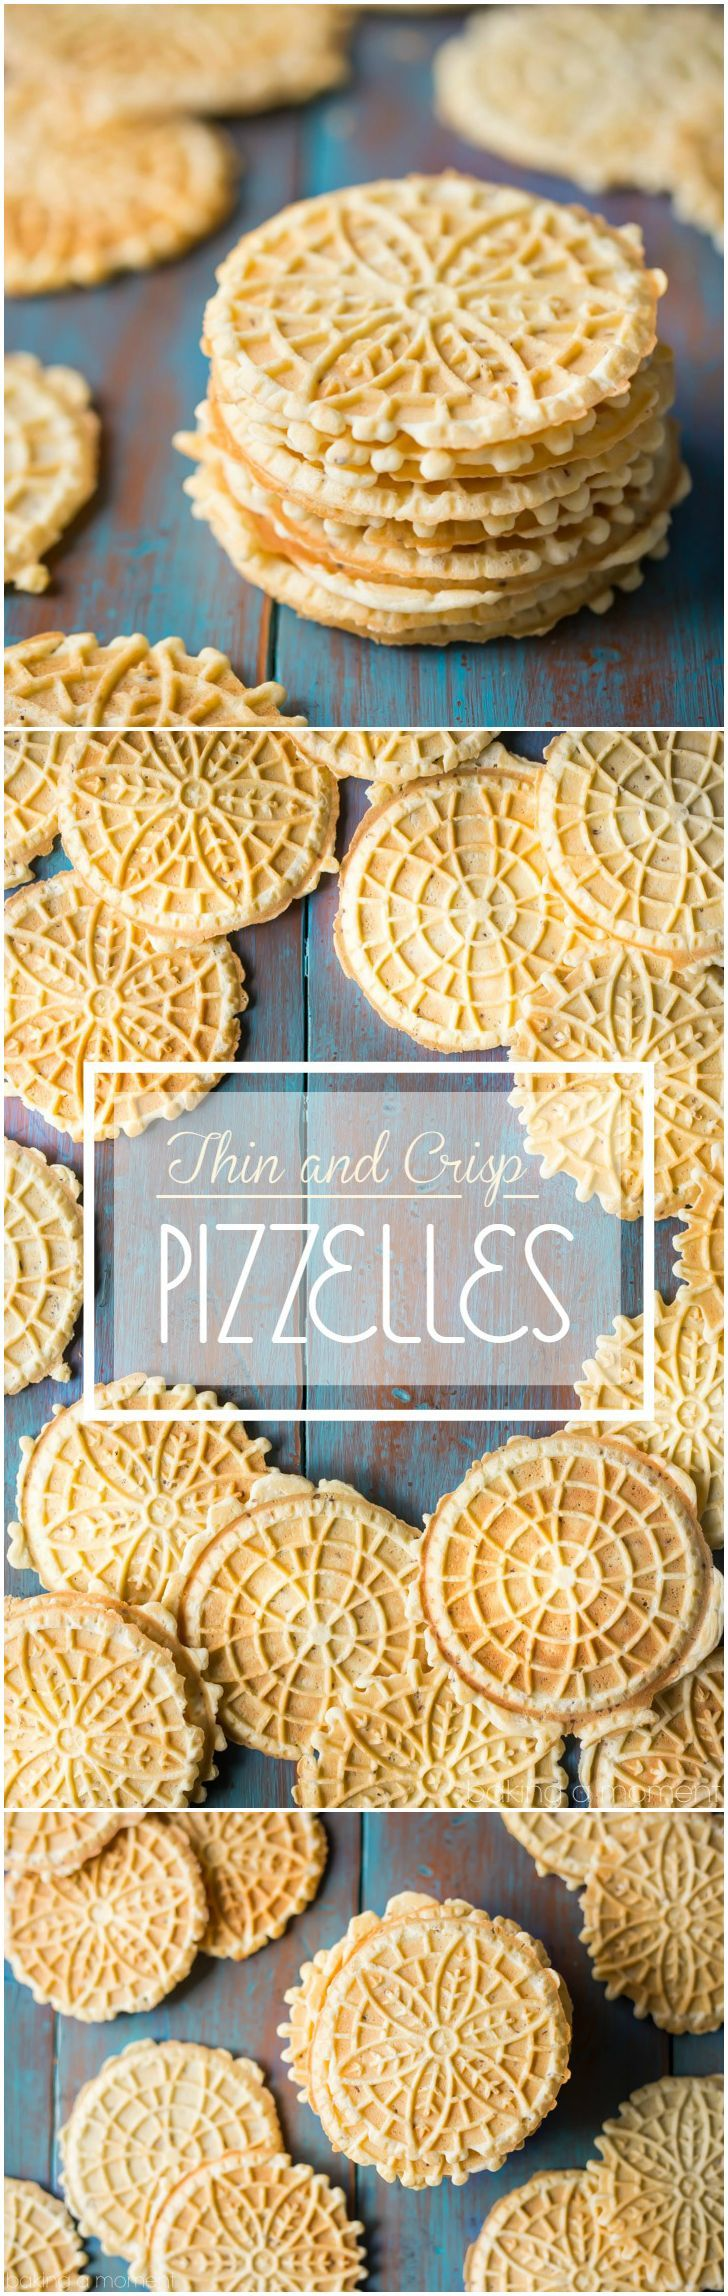 My search is over- this is the PERFECT pizzelle recipe! So thin, so light, so incredibly crisp, with plenty of authentic anise flavor. These are just like my great-aunt used to make- maybe even better!